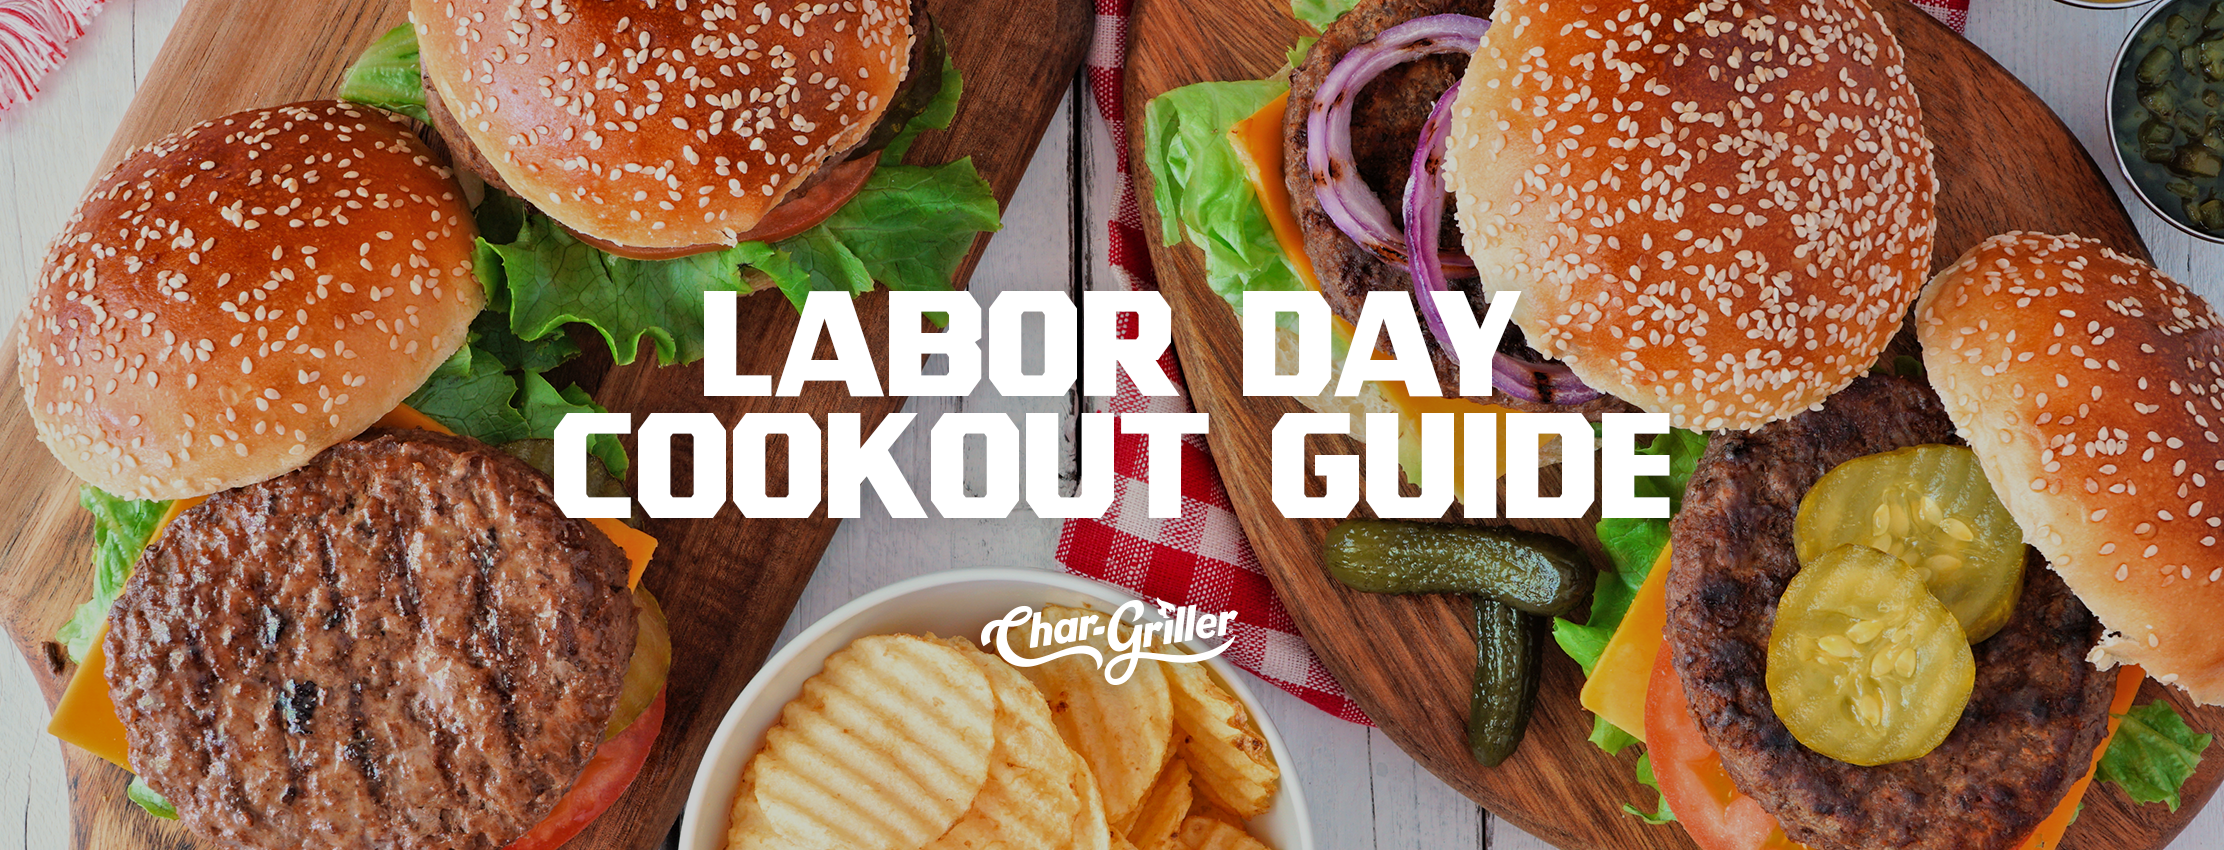 Labor Day Cookout Guide